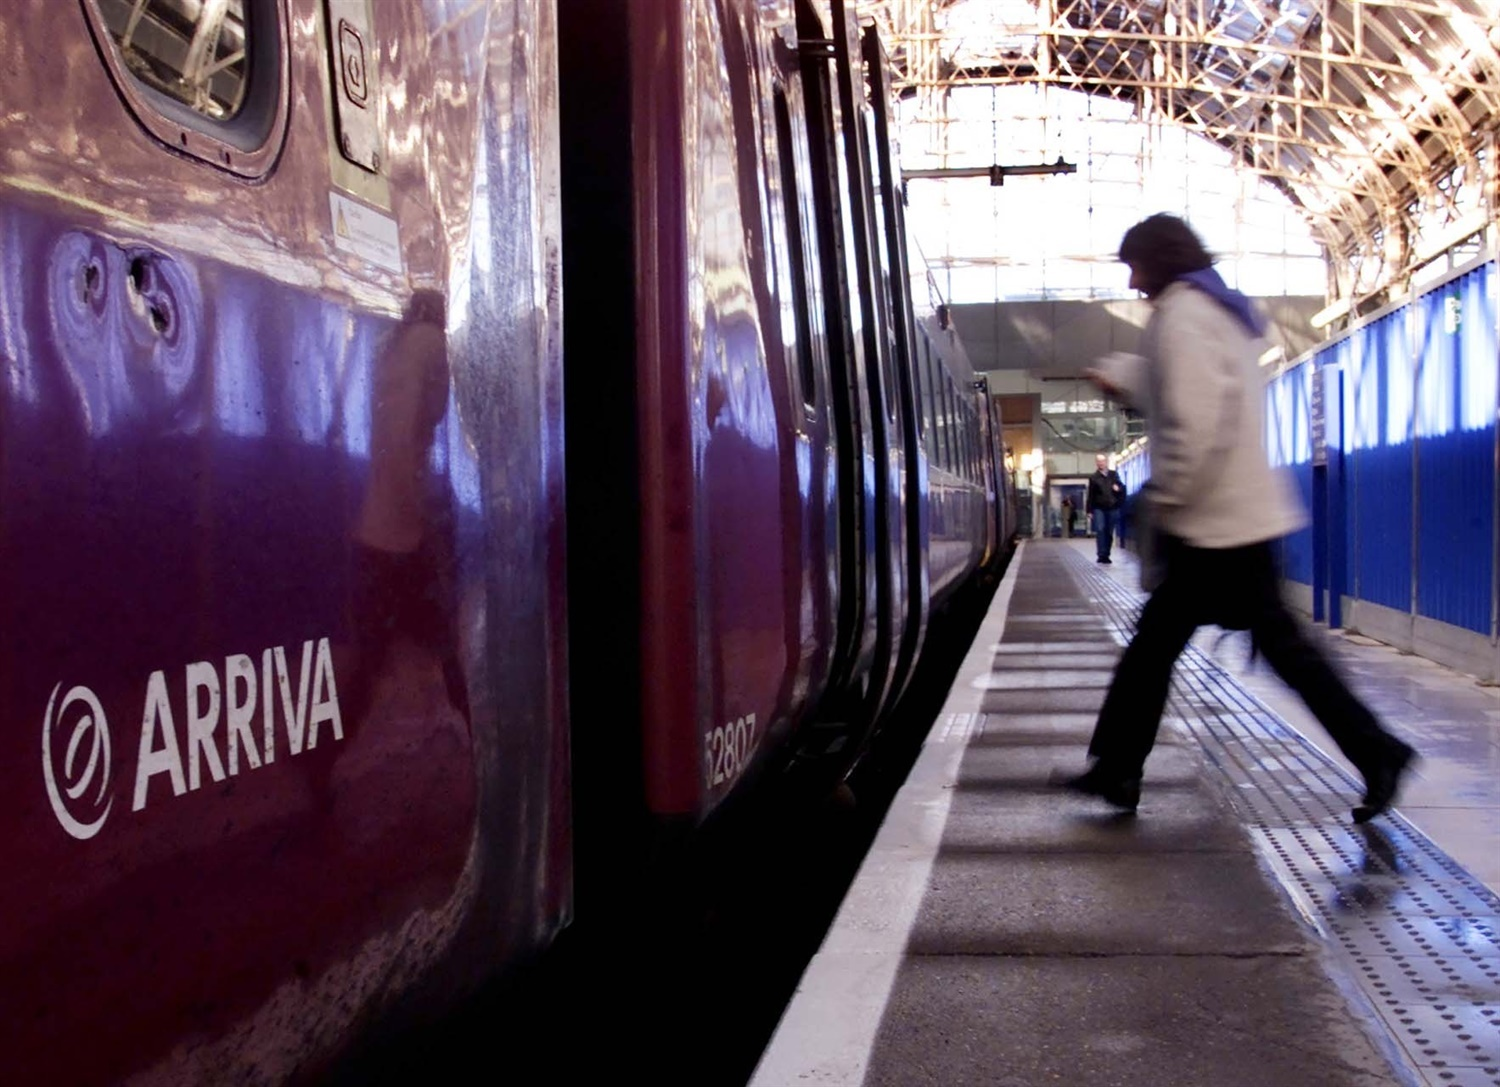 Arriva's Northern takeover could lead to some 'significantly' higher fares, CMA finds